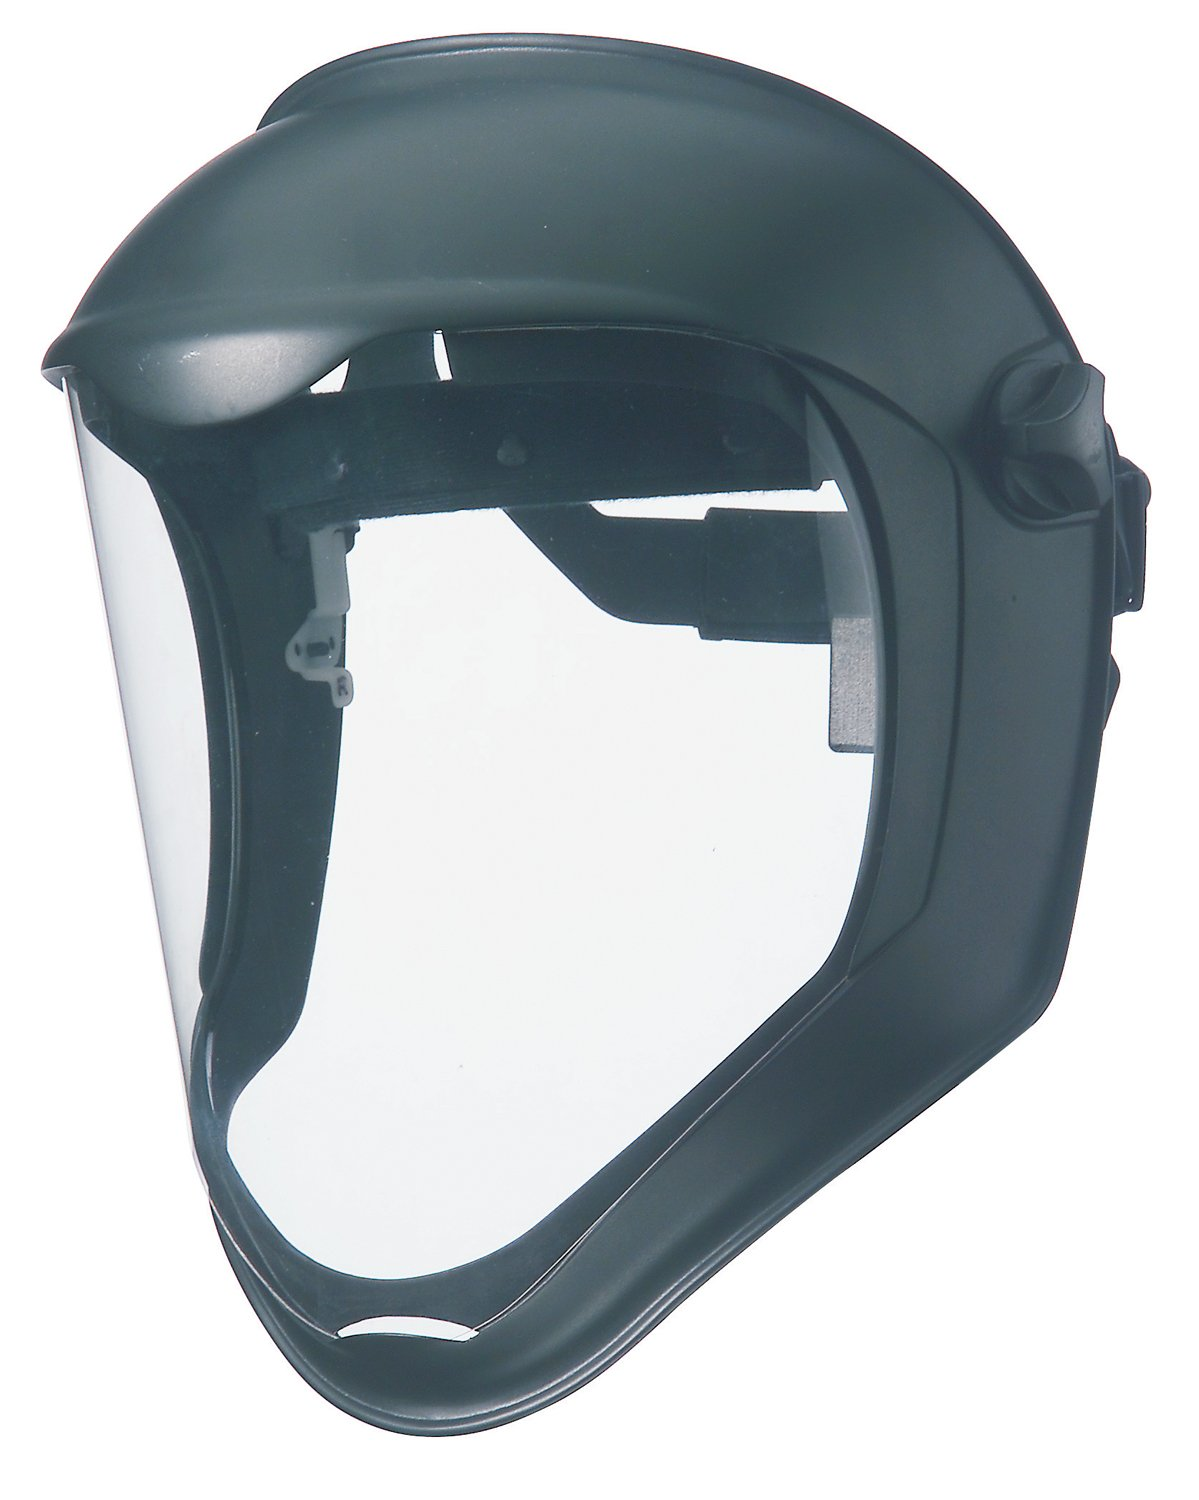 Uvex by Honeywell S8500 Bionic Face Shields, Uncoated, Clear/Black Matte by Honeywell